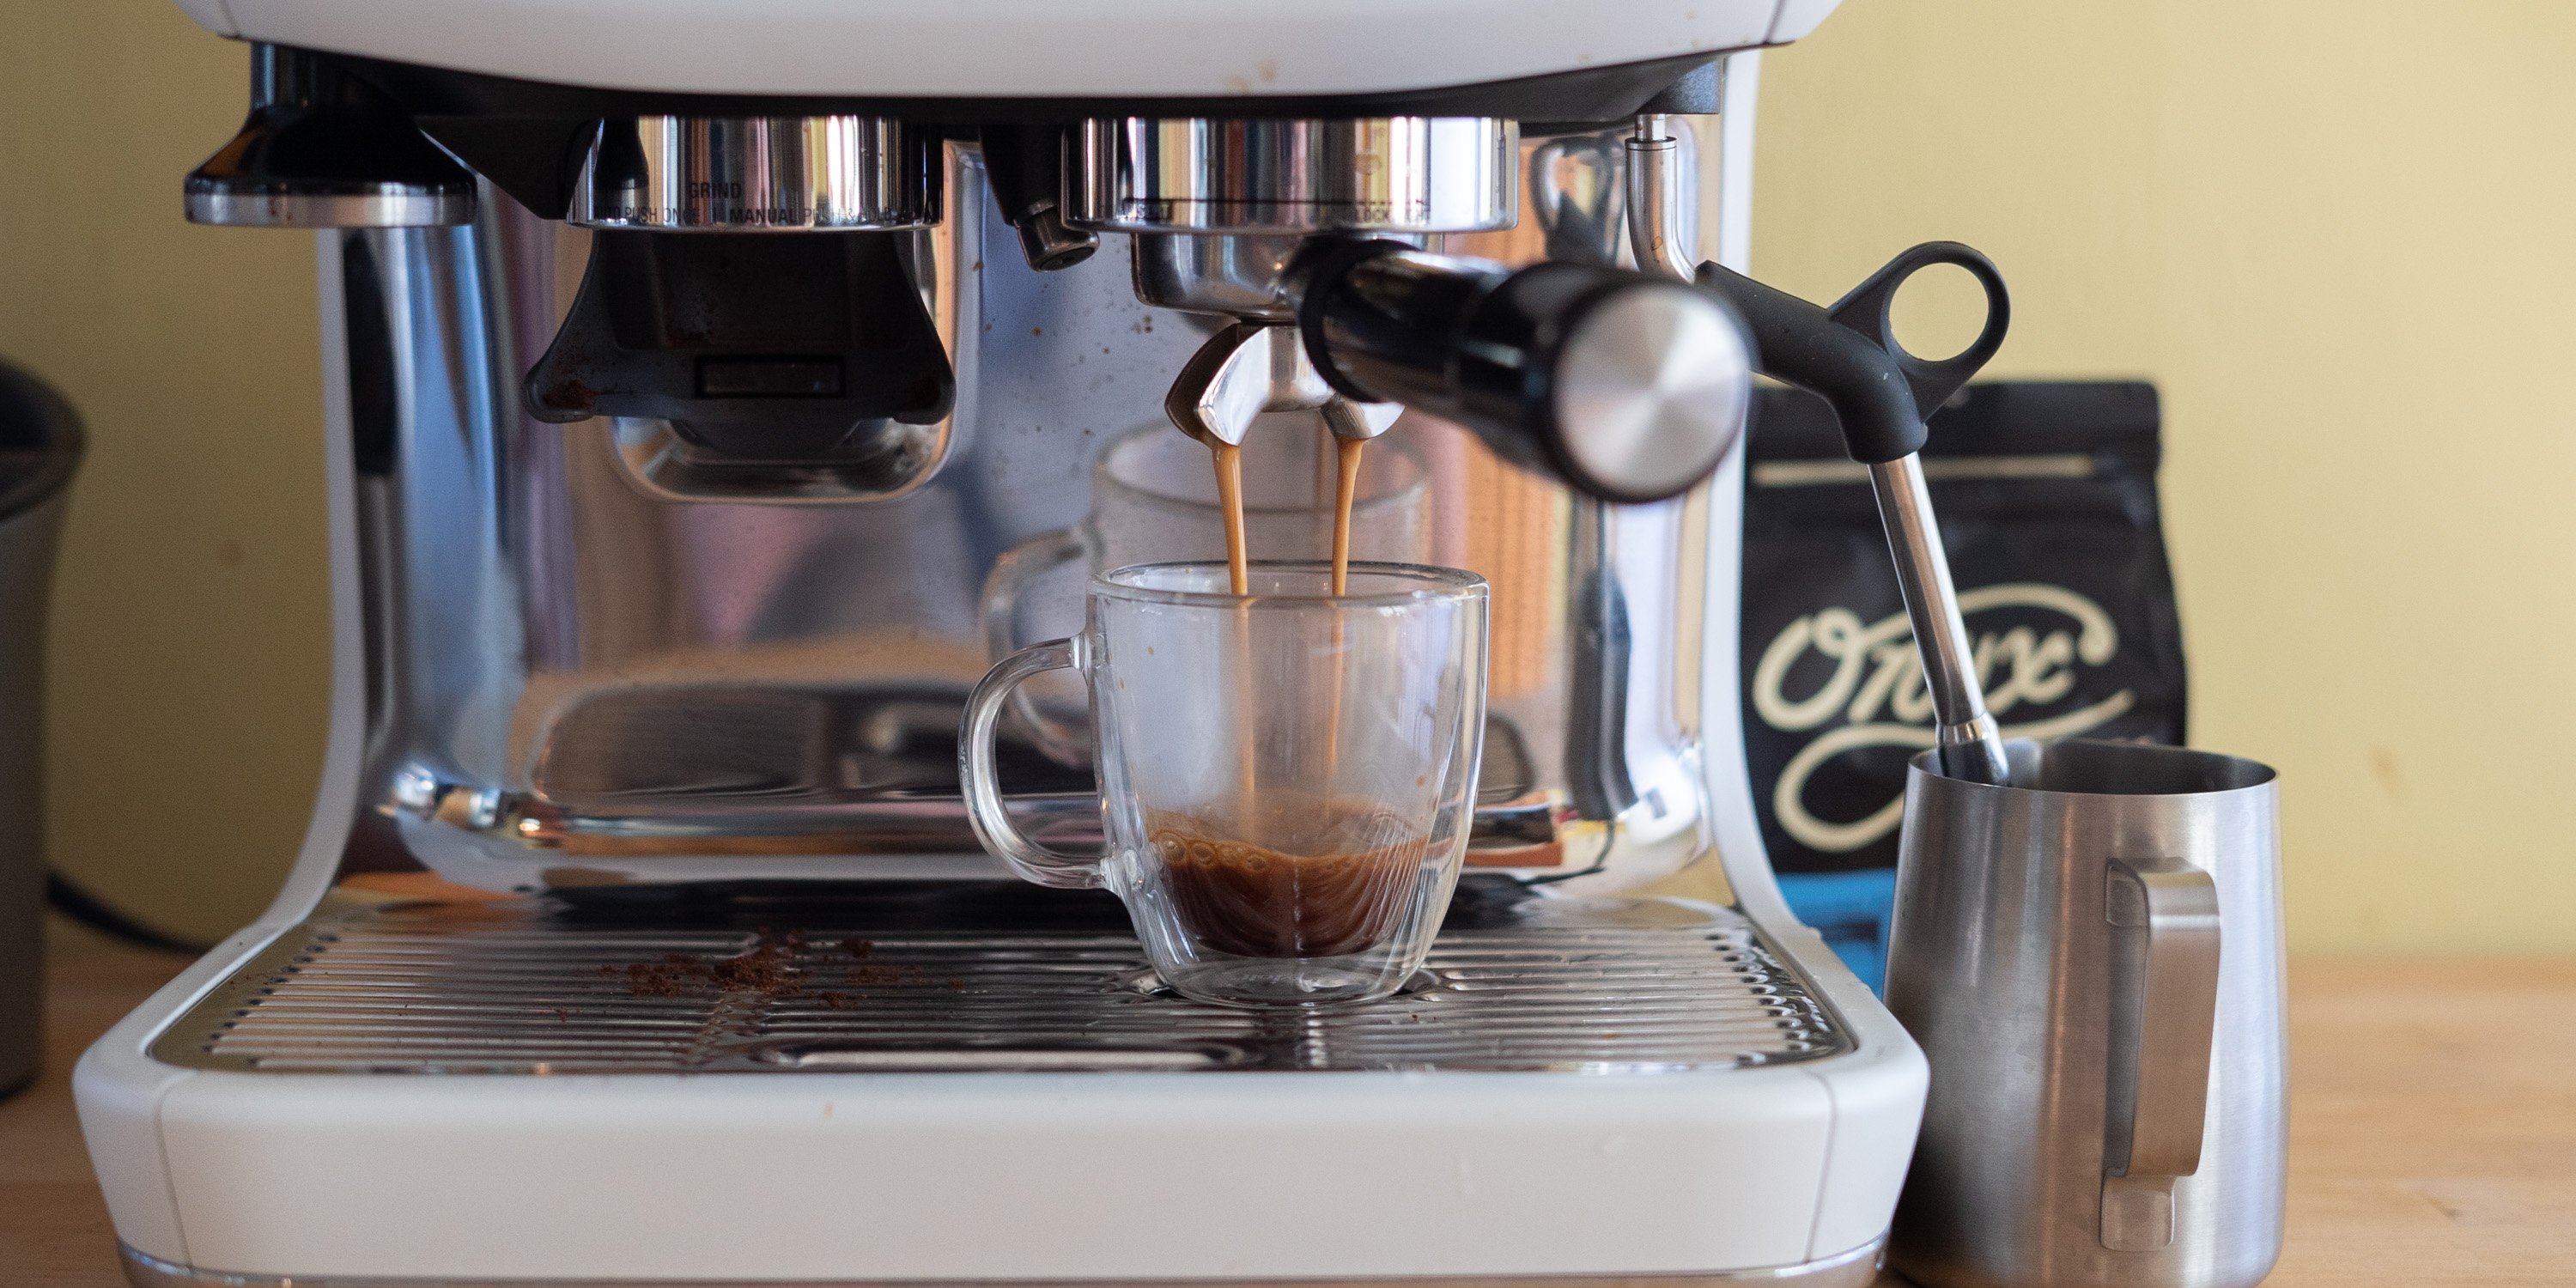 extracting espresso with the Breville Barista Pro